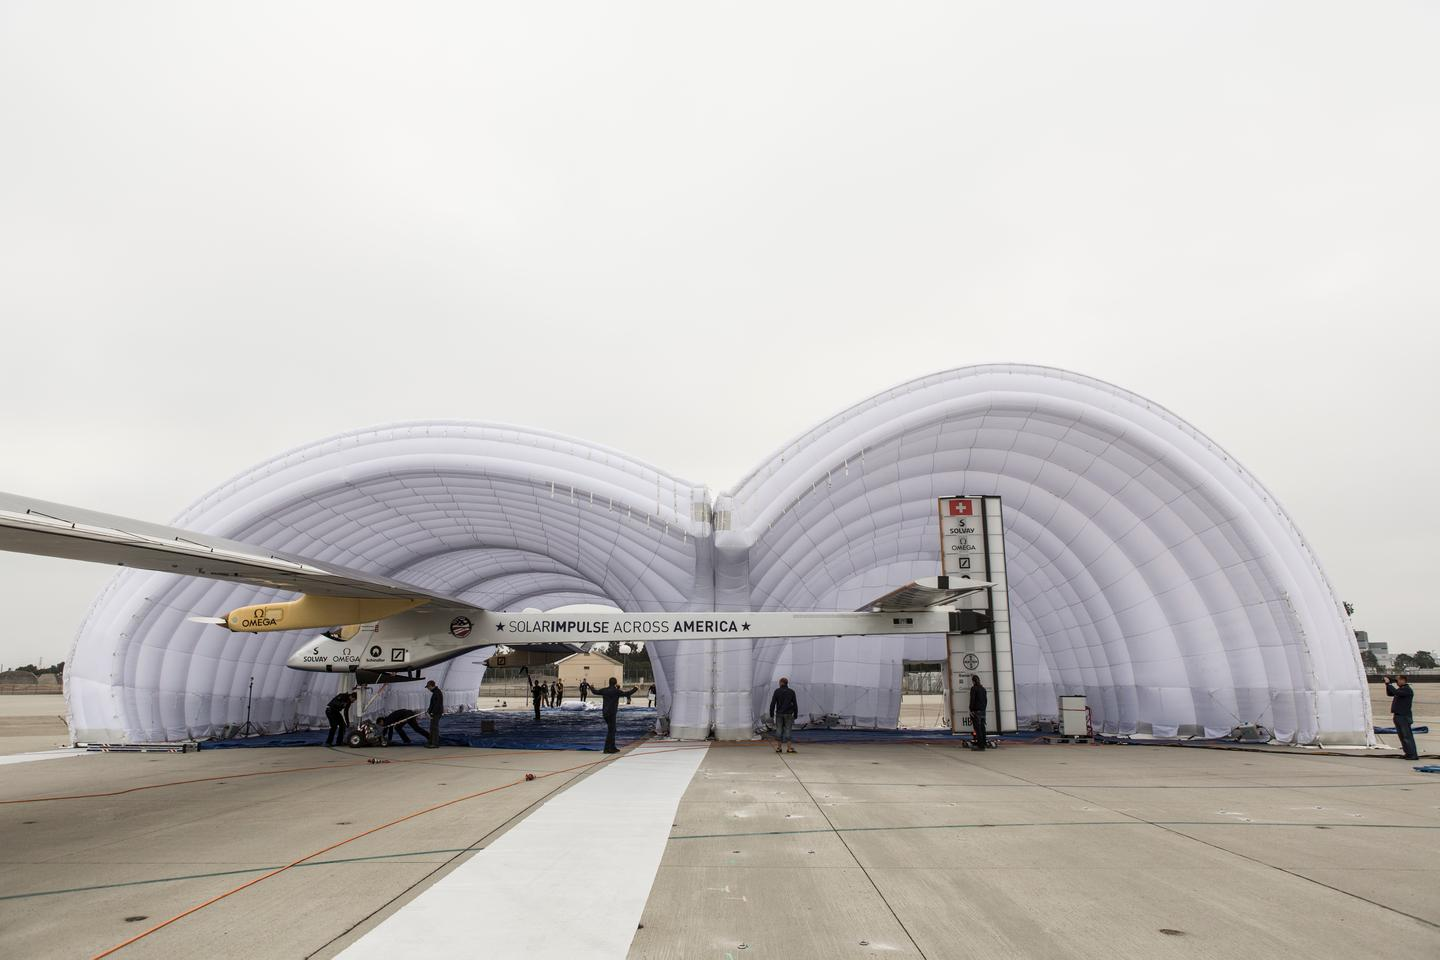 The inflatable hangar is 11 m high at its highest point to accommodate the Solar Impulse's tail (Photo: © Solar Impulse | Ackermann | Rezo.ch)